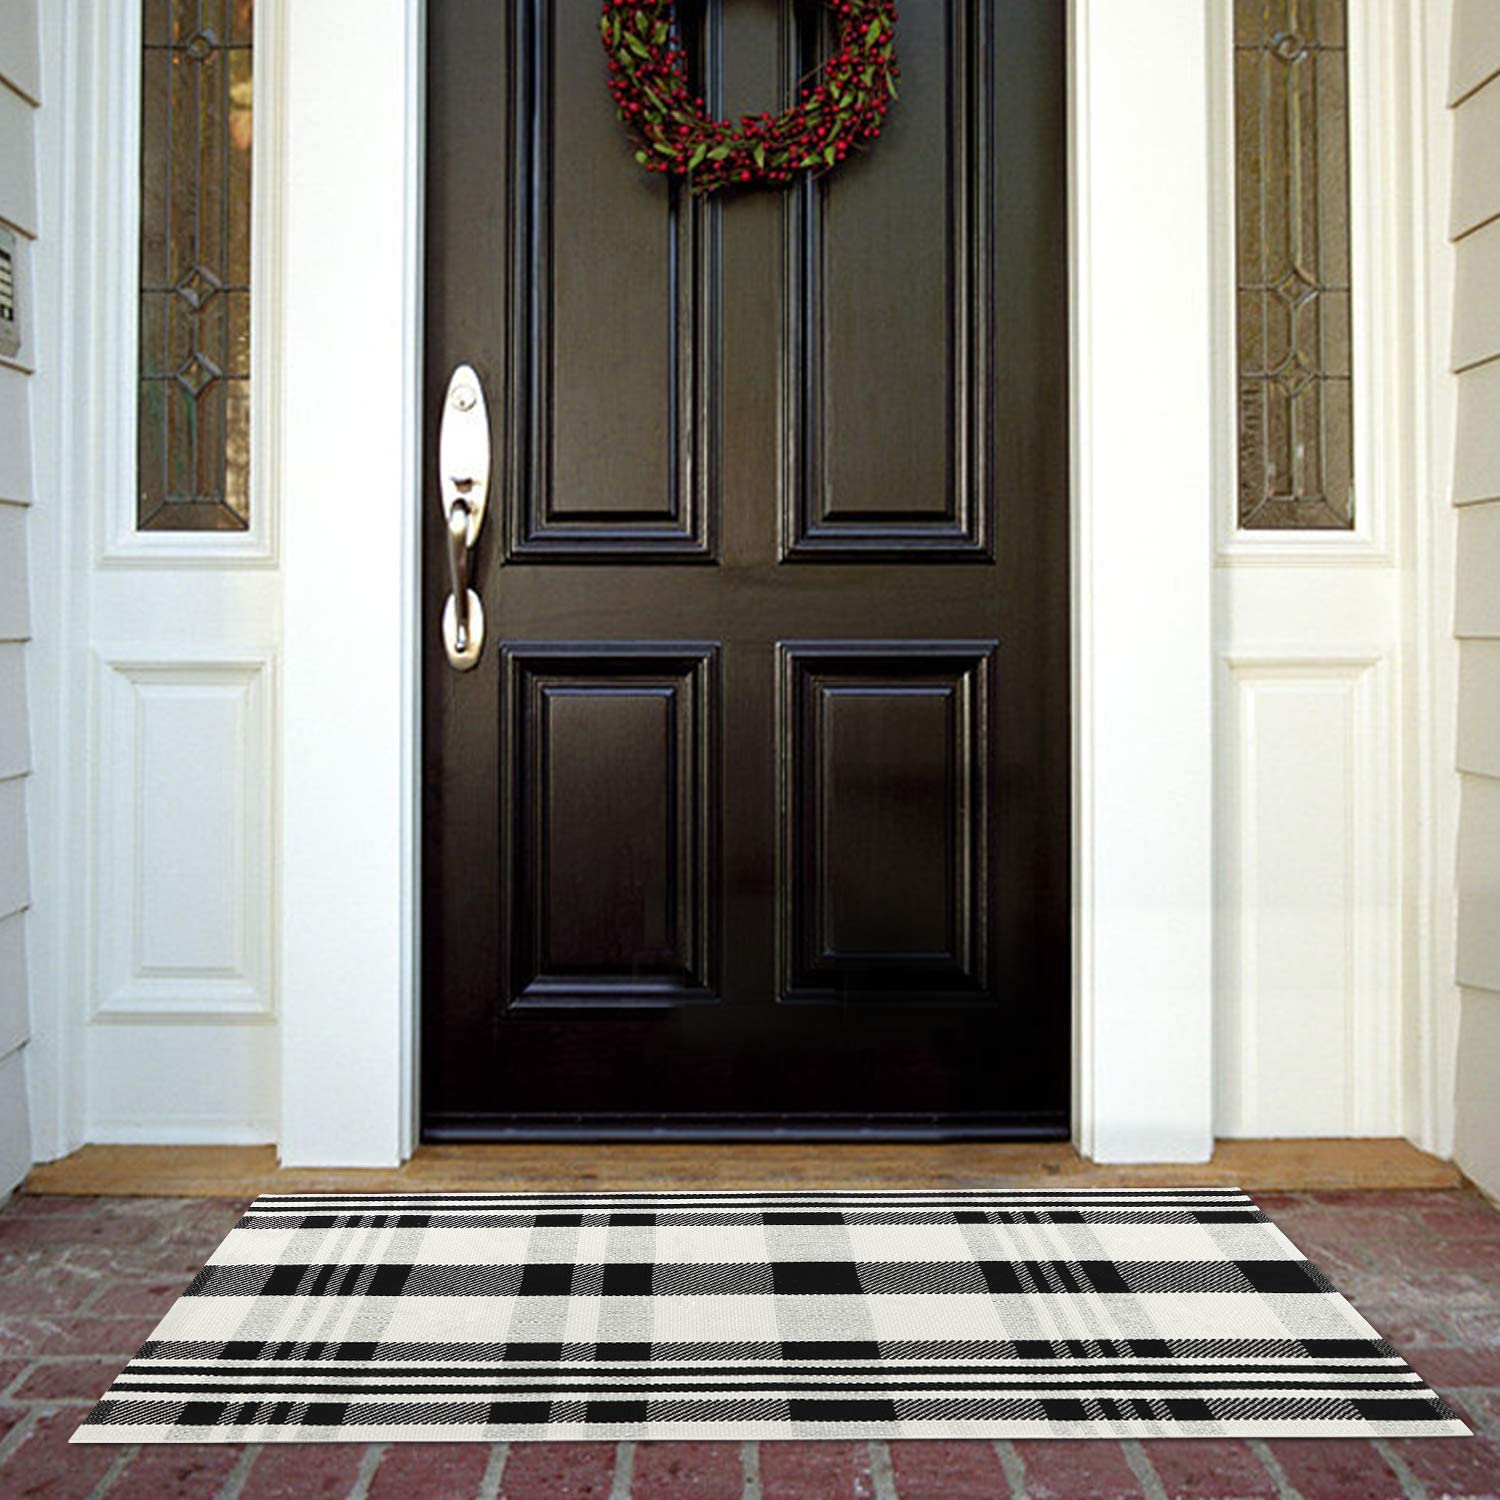 Buffalo Plaid Phoenix Mall Outdoor Rug At the price of surprise Runner Co Collive Black Doormat White